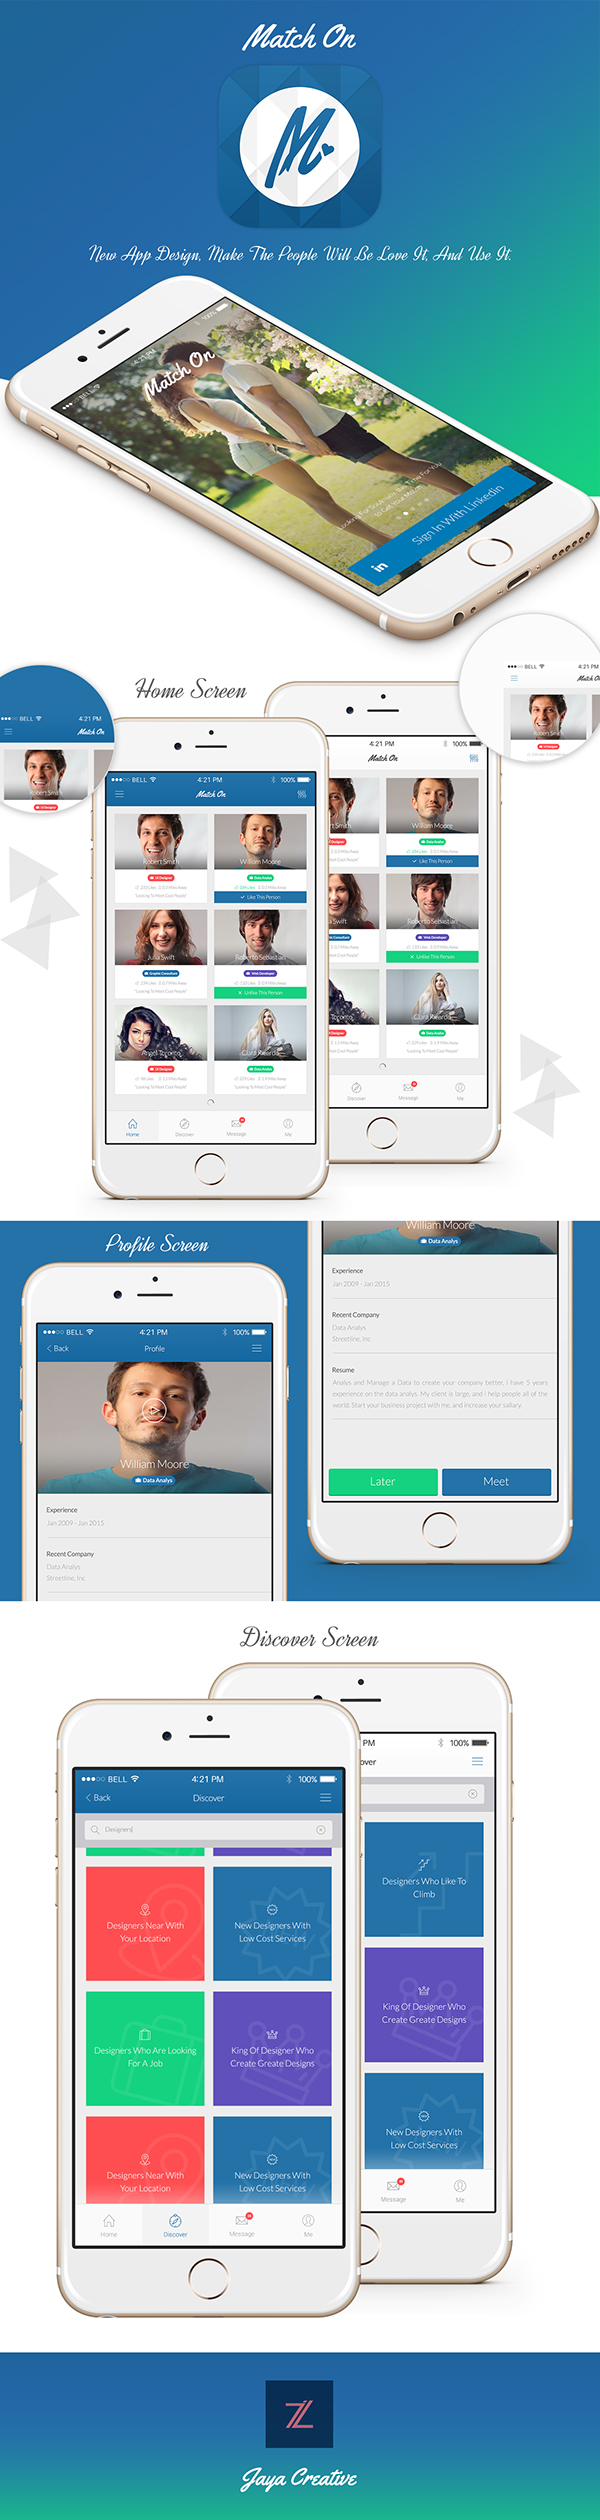 Match On (Incredible Dating App) on Behance